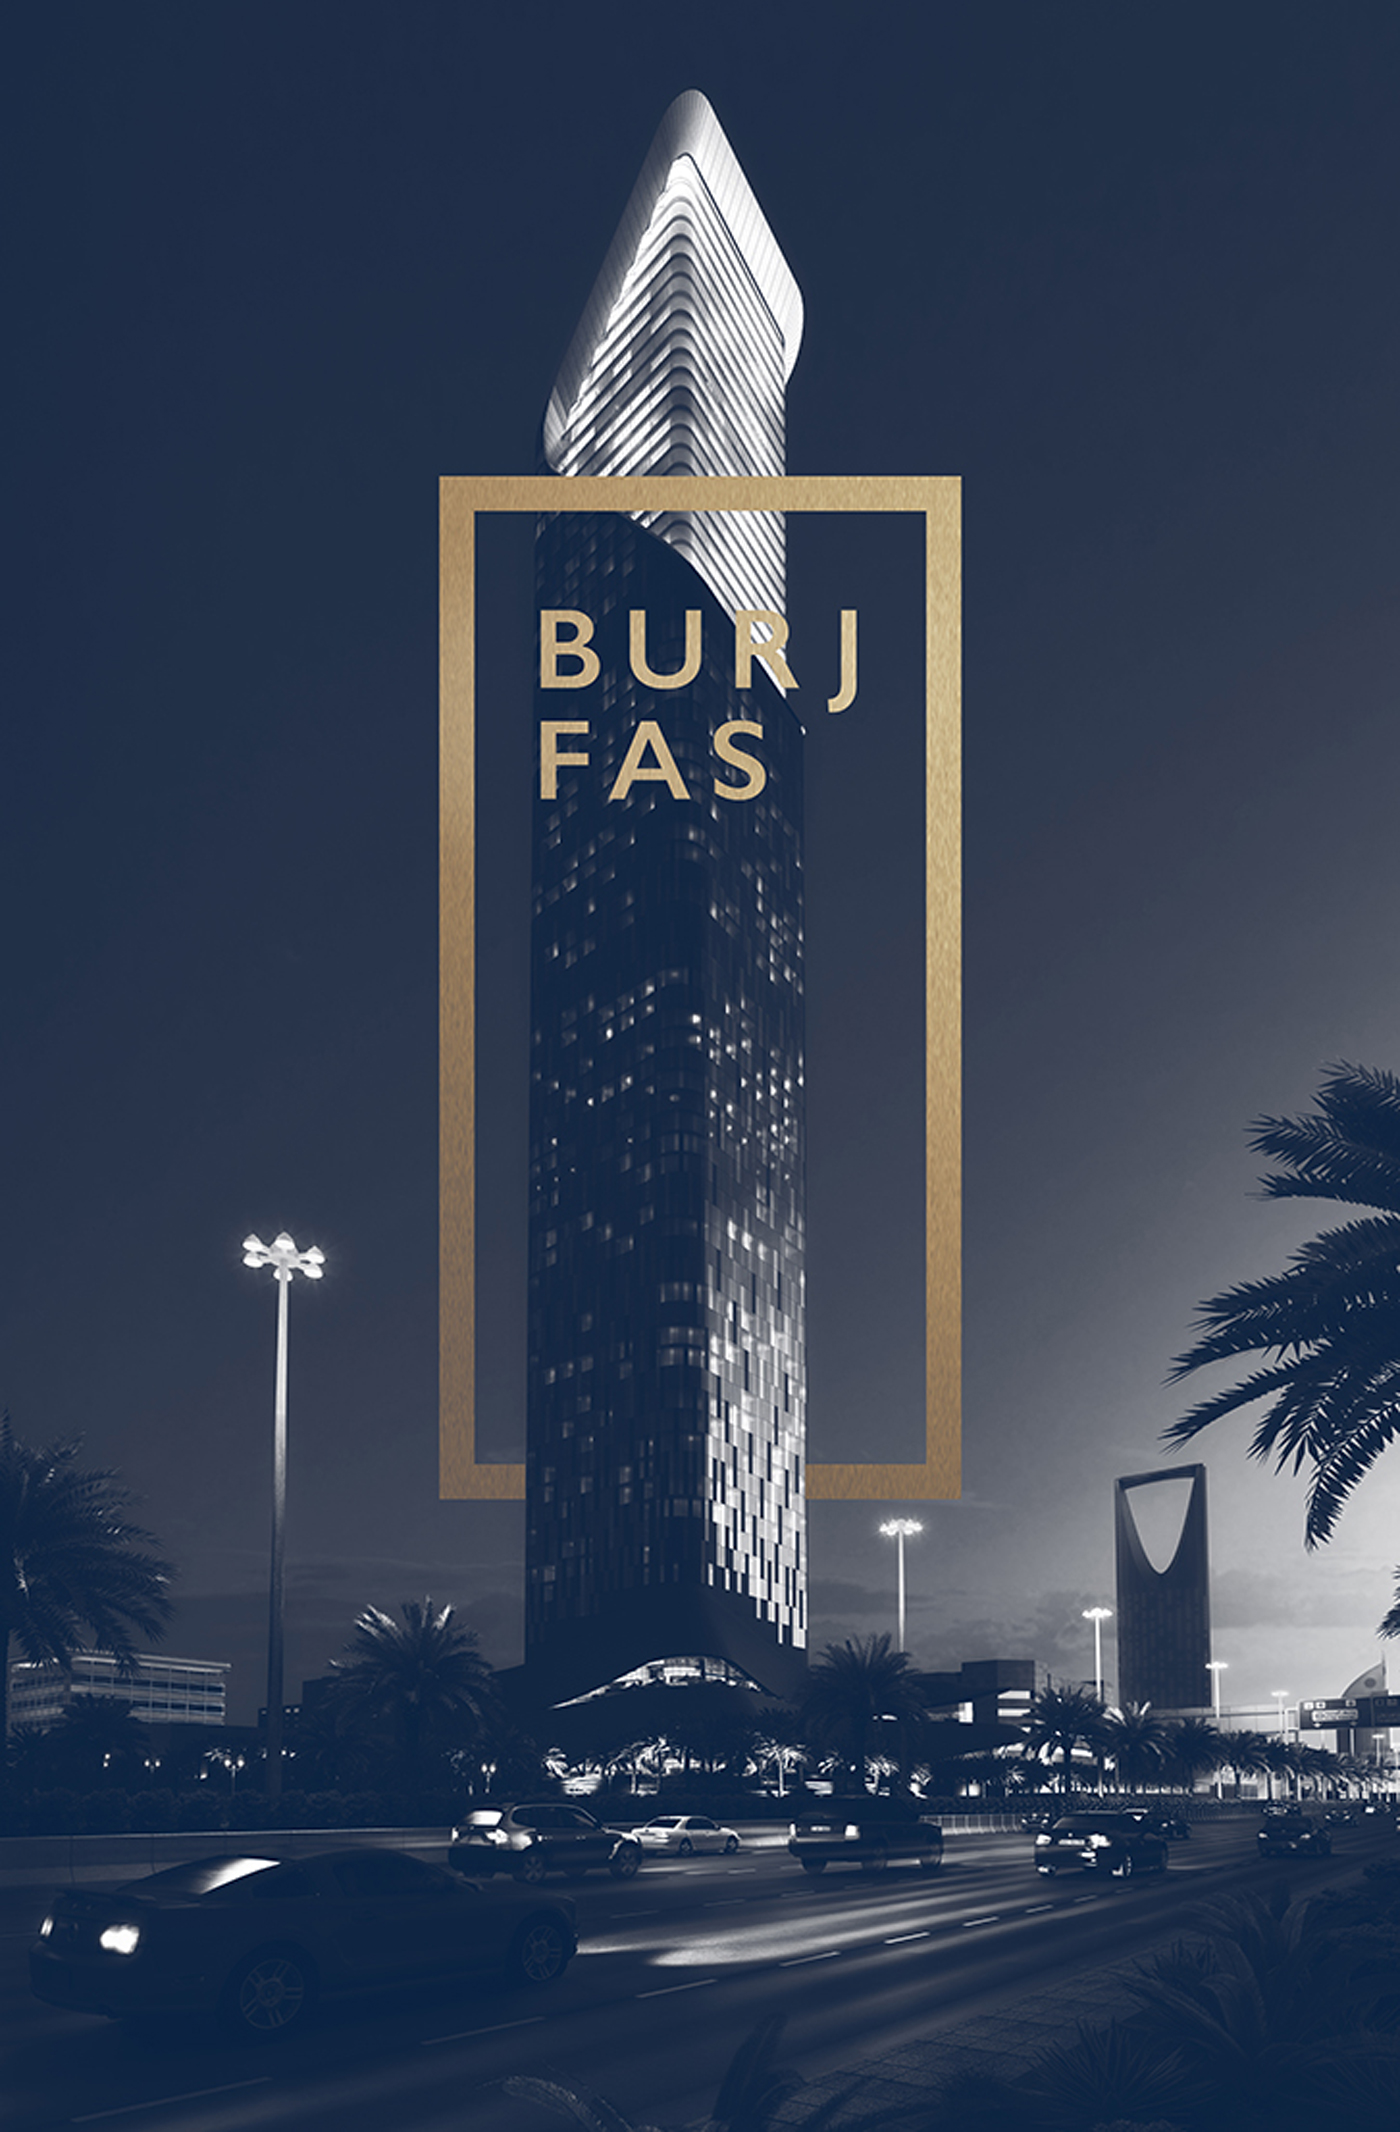 Discover Credit Card Sign In >> Burj Fas on Behance